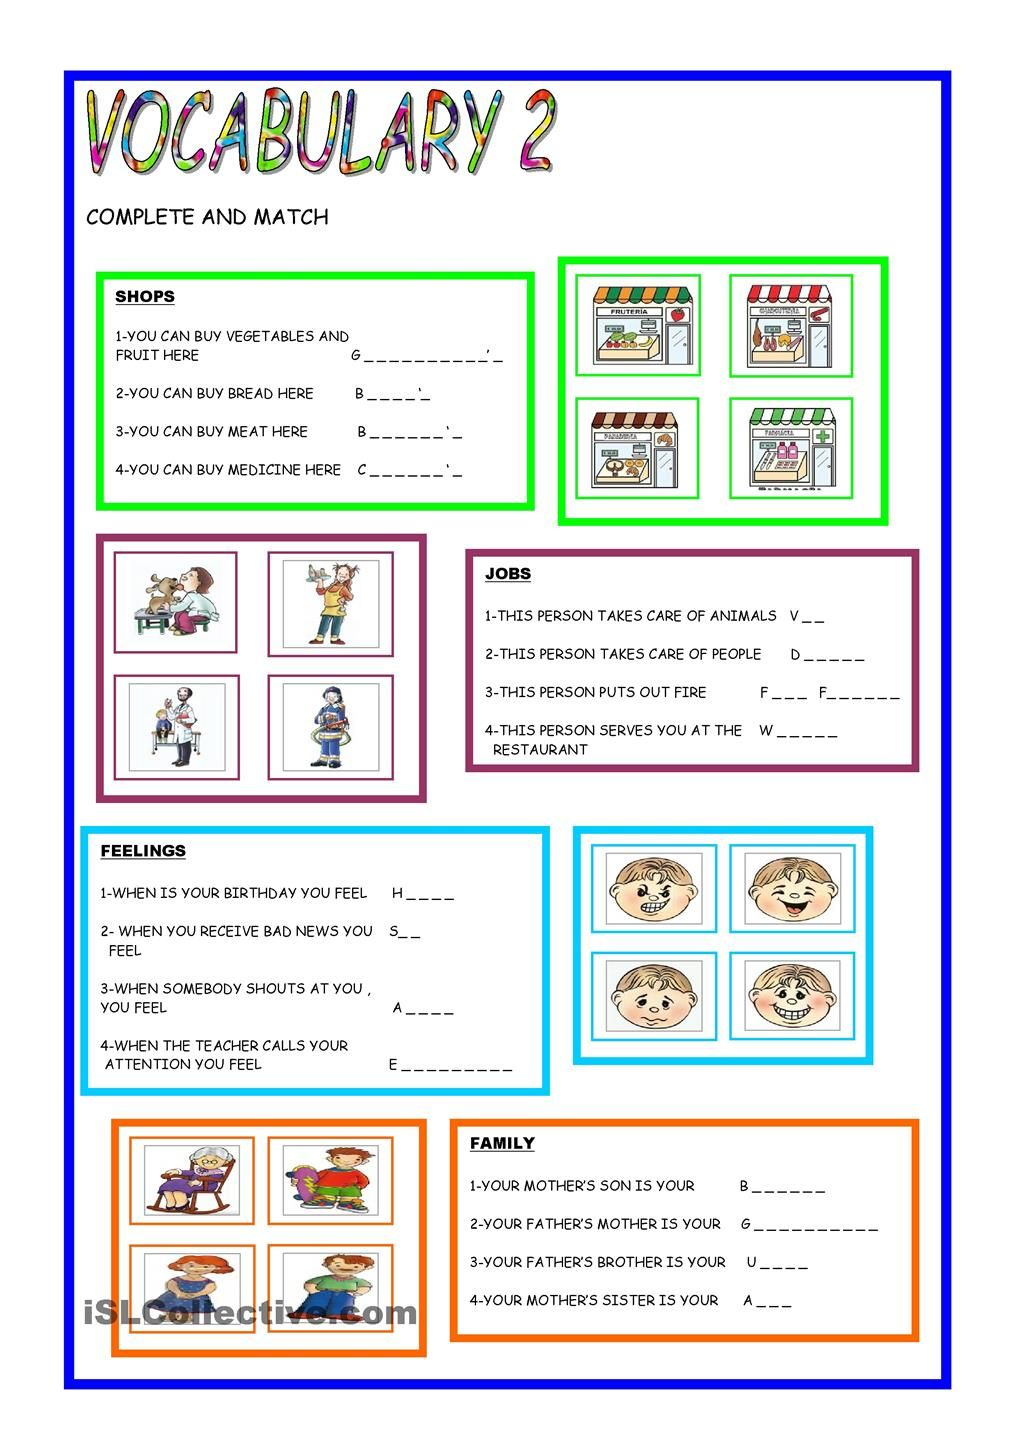 worksheet News 2 You Worksheets vocabulary 2 pinterest worksheets english class printable worksheetselementary